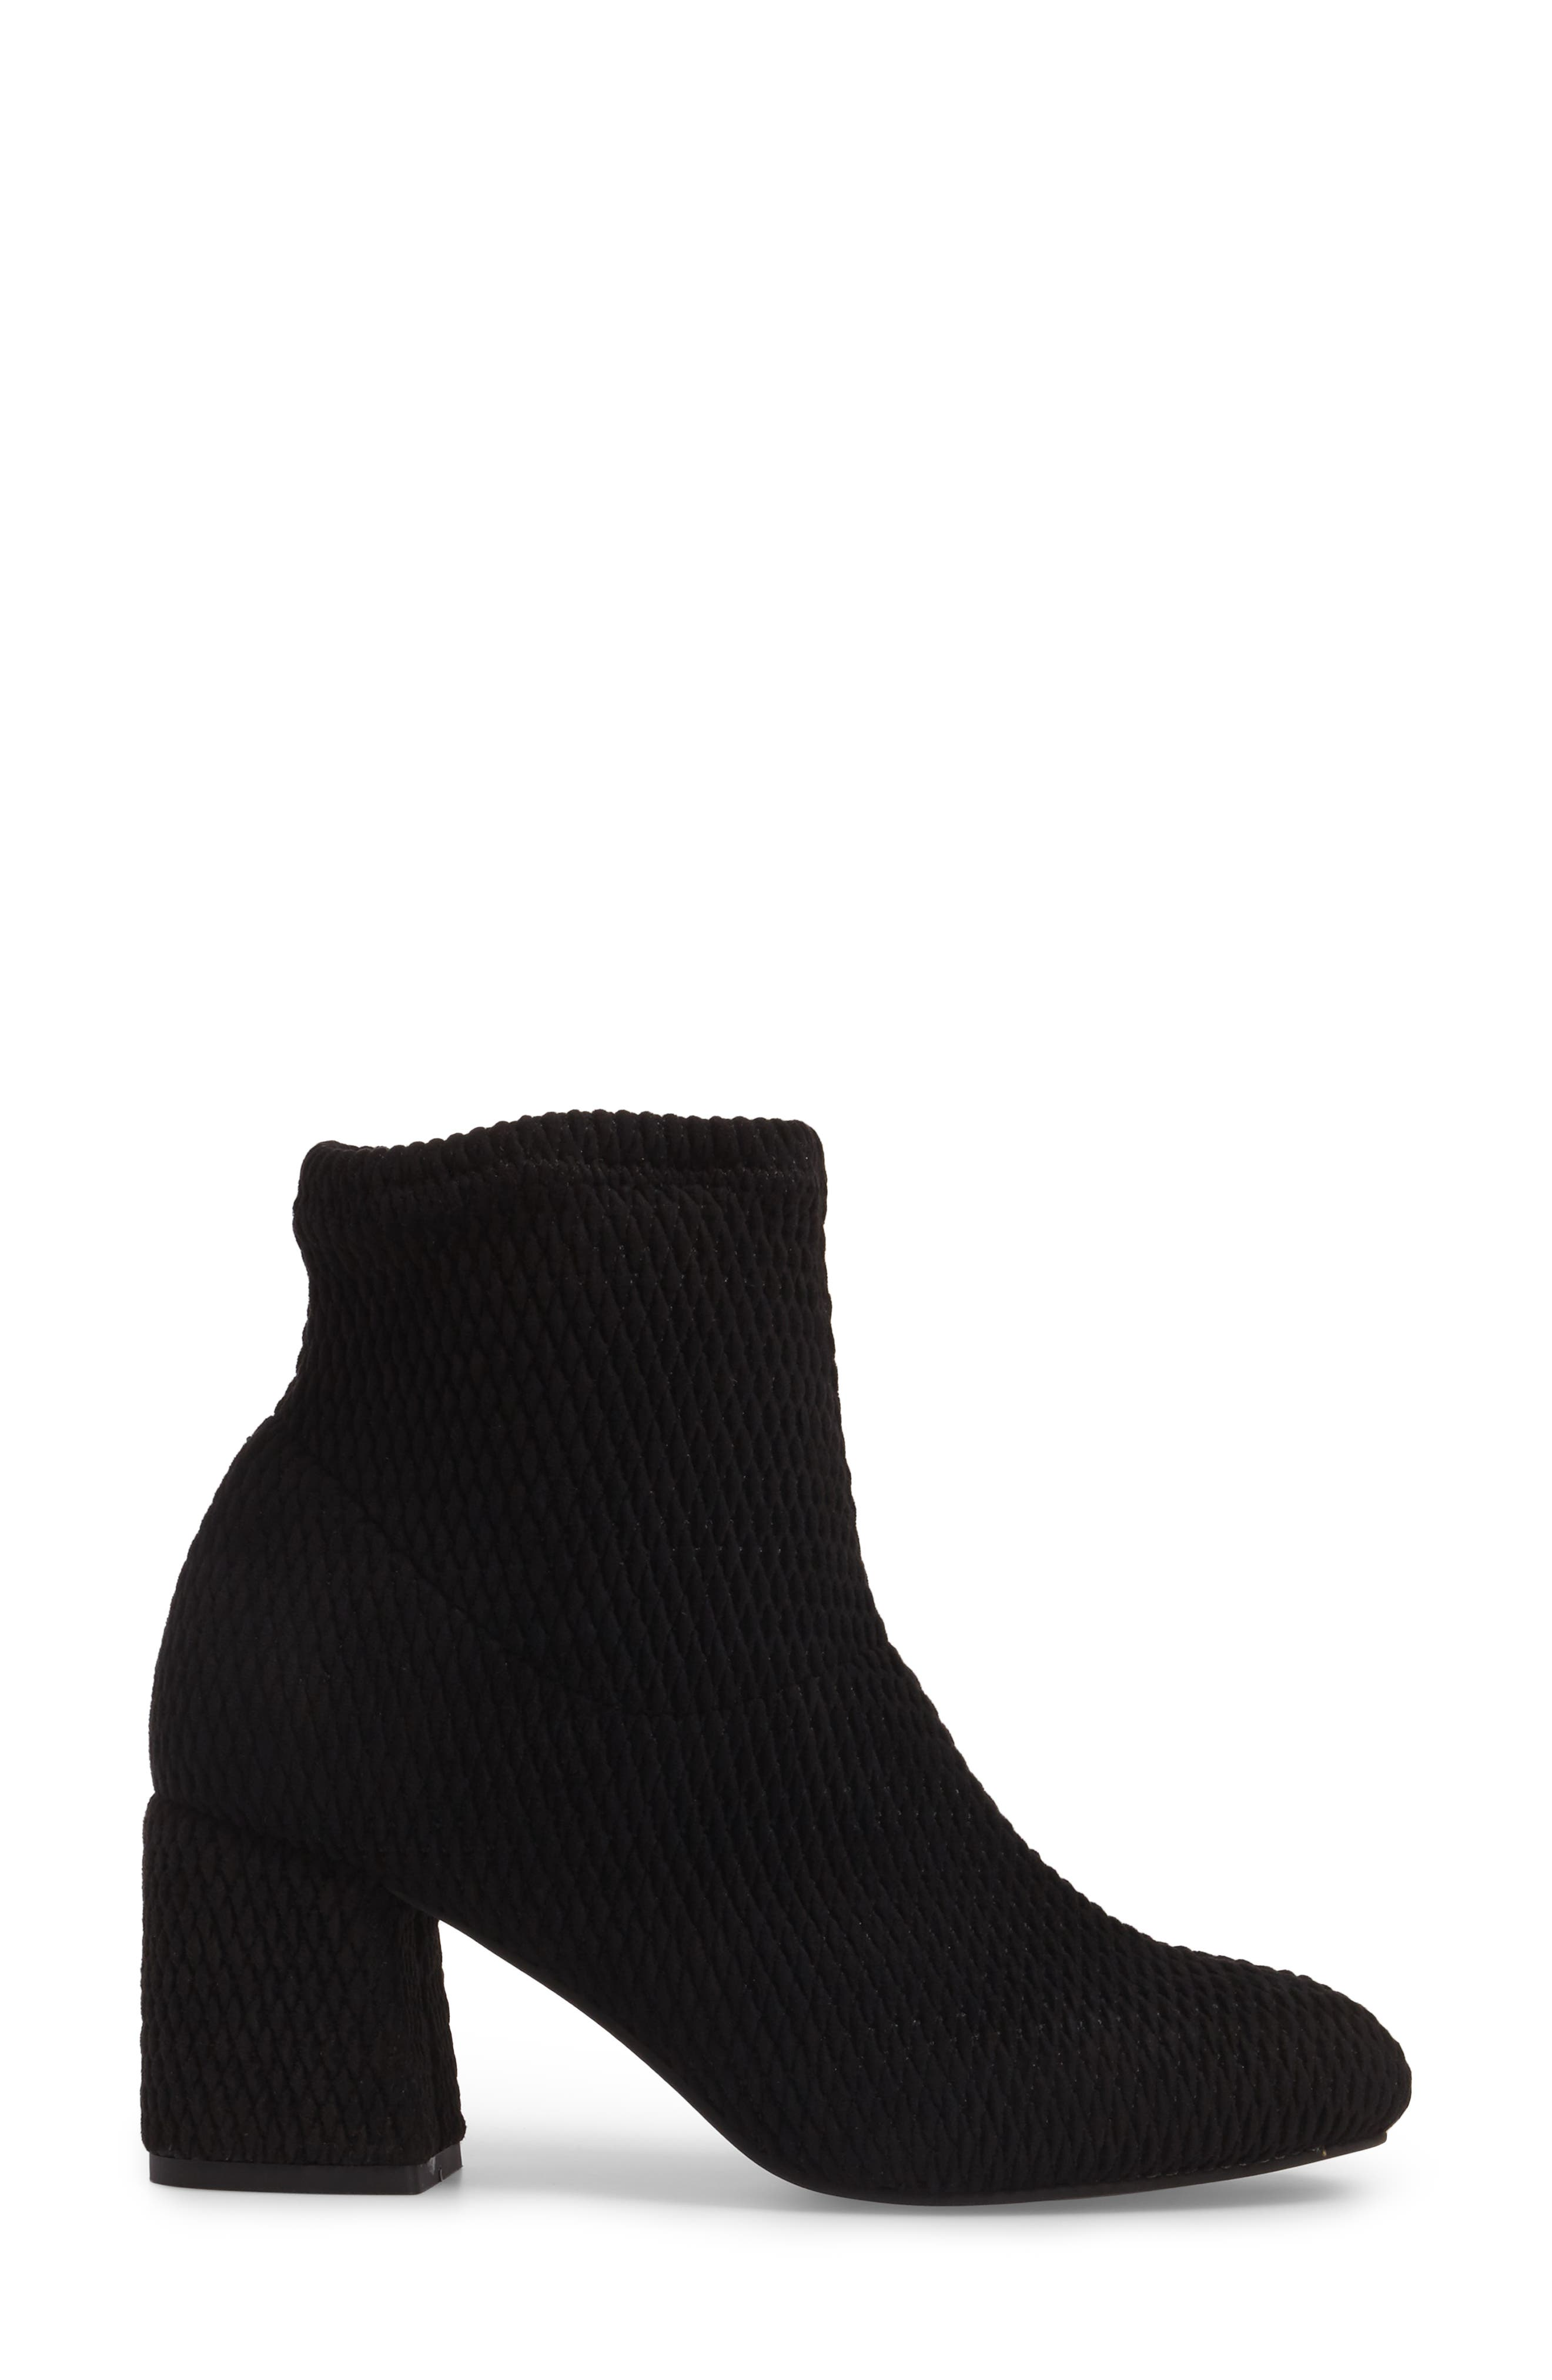 Ad Lib Sock Bootie,                             Alternate thumbnail 3, color,                             Black Fabric